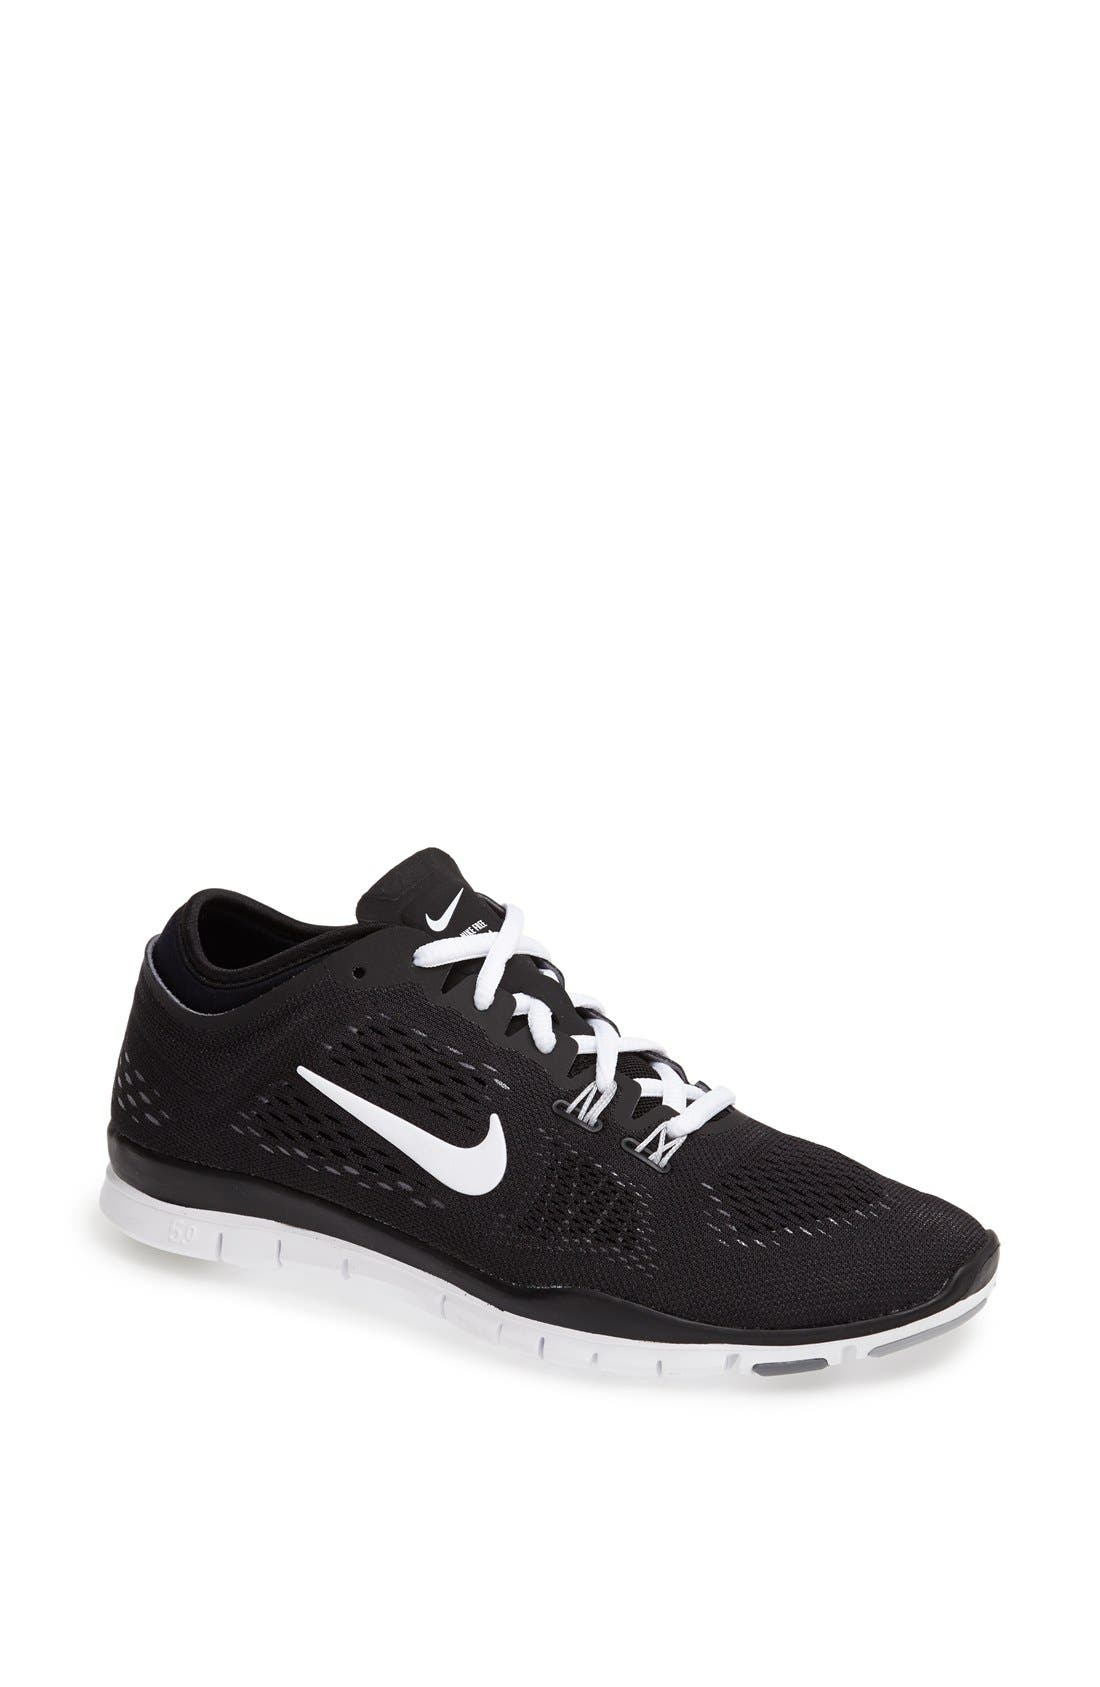 NIKE 'Free 5.0 TR Fit 4' Training Shoe, Main, color, 001